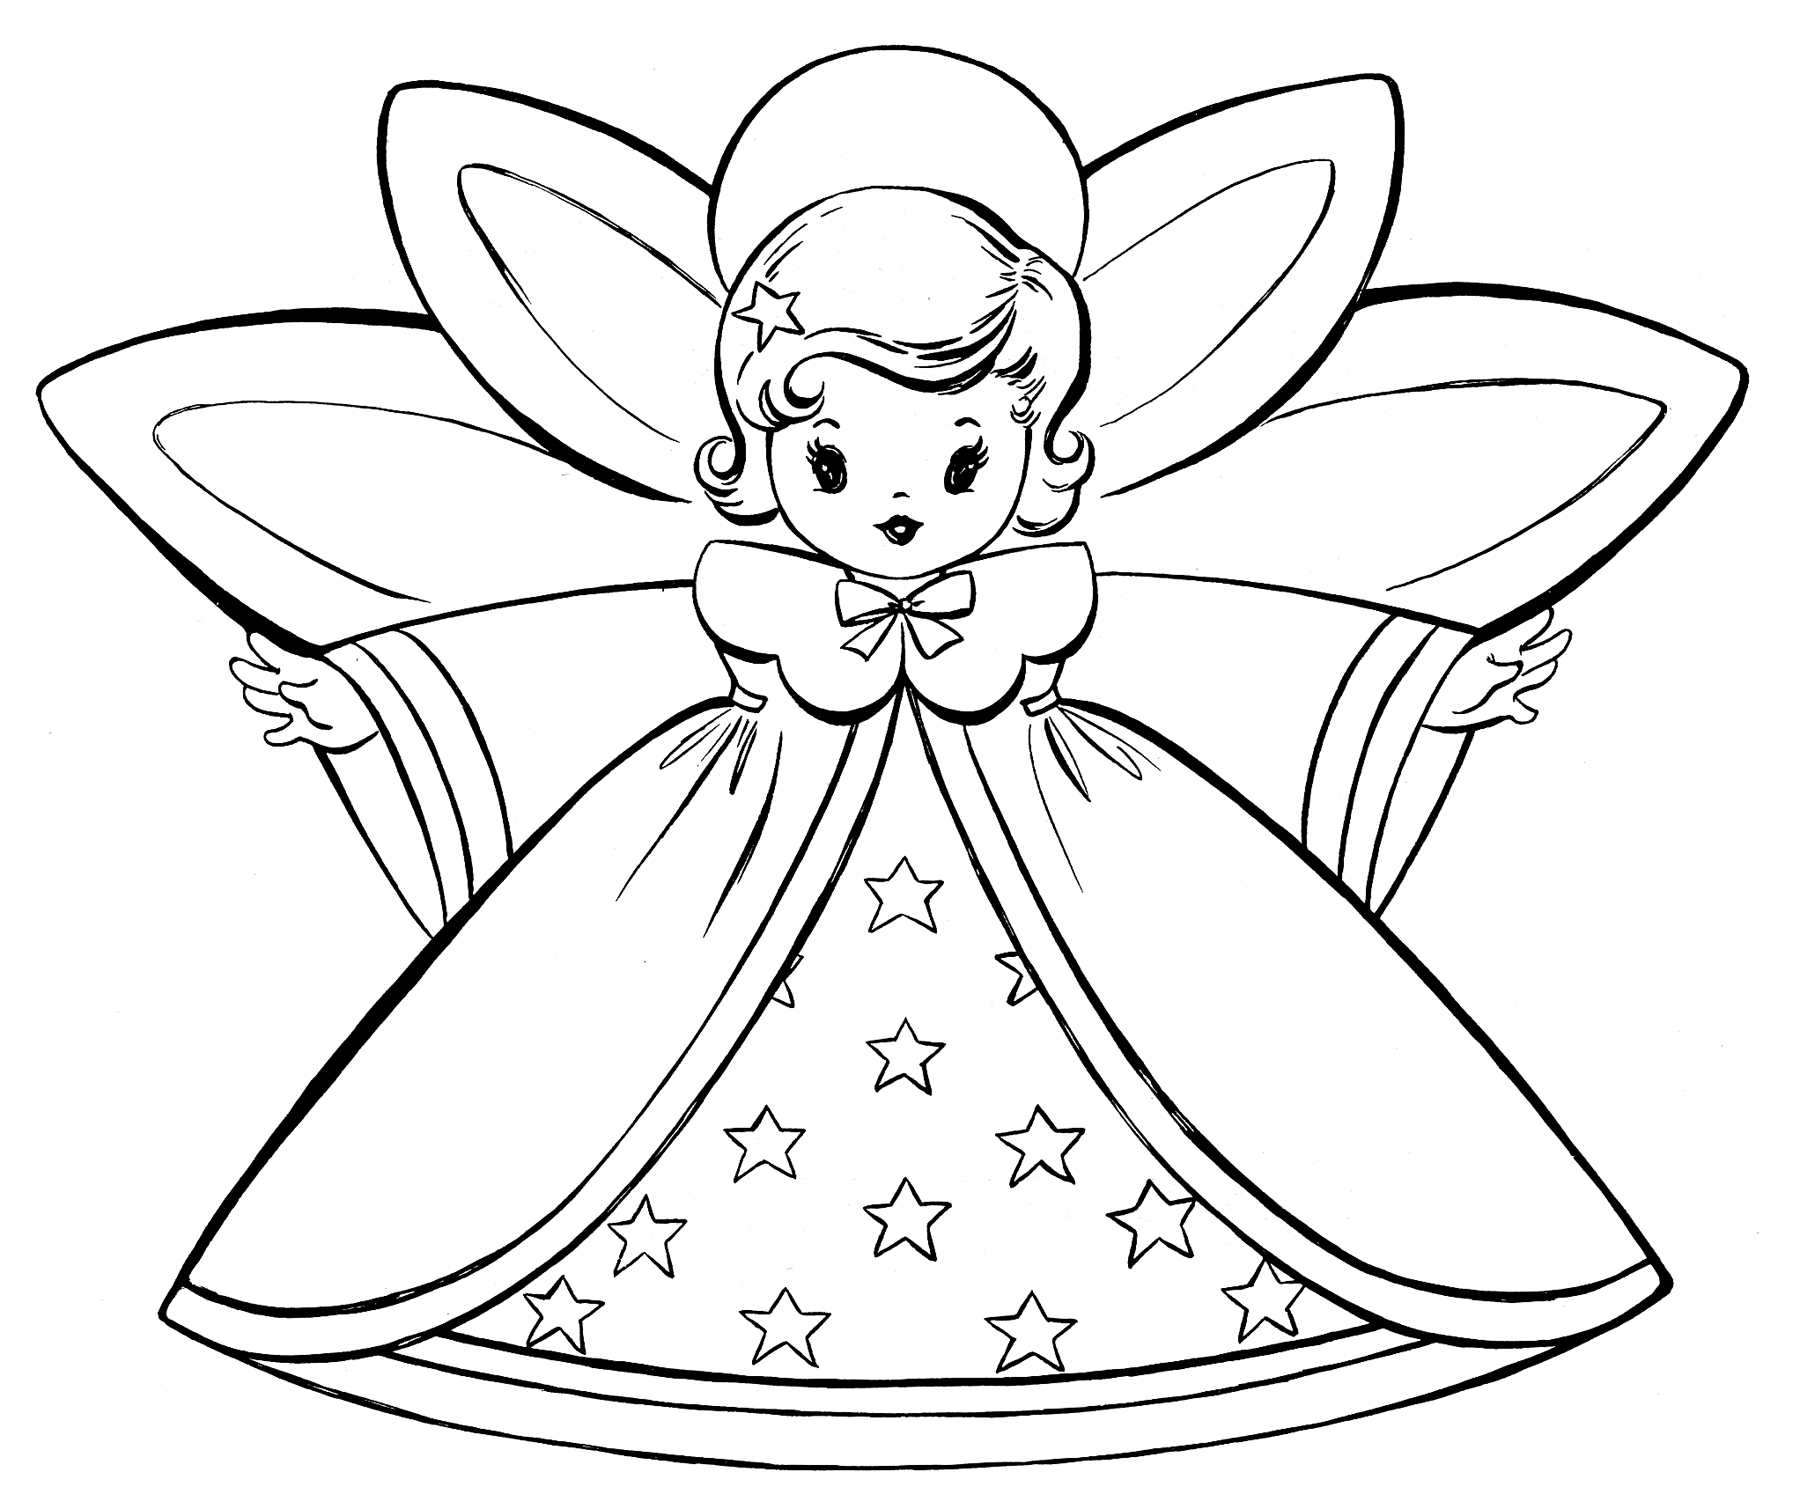 Christmas Coloring Pages Gallery 12m - Save it to your computer